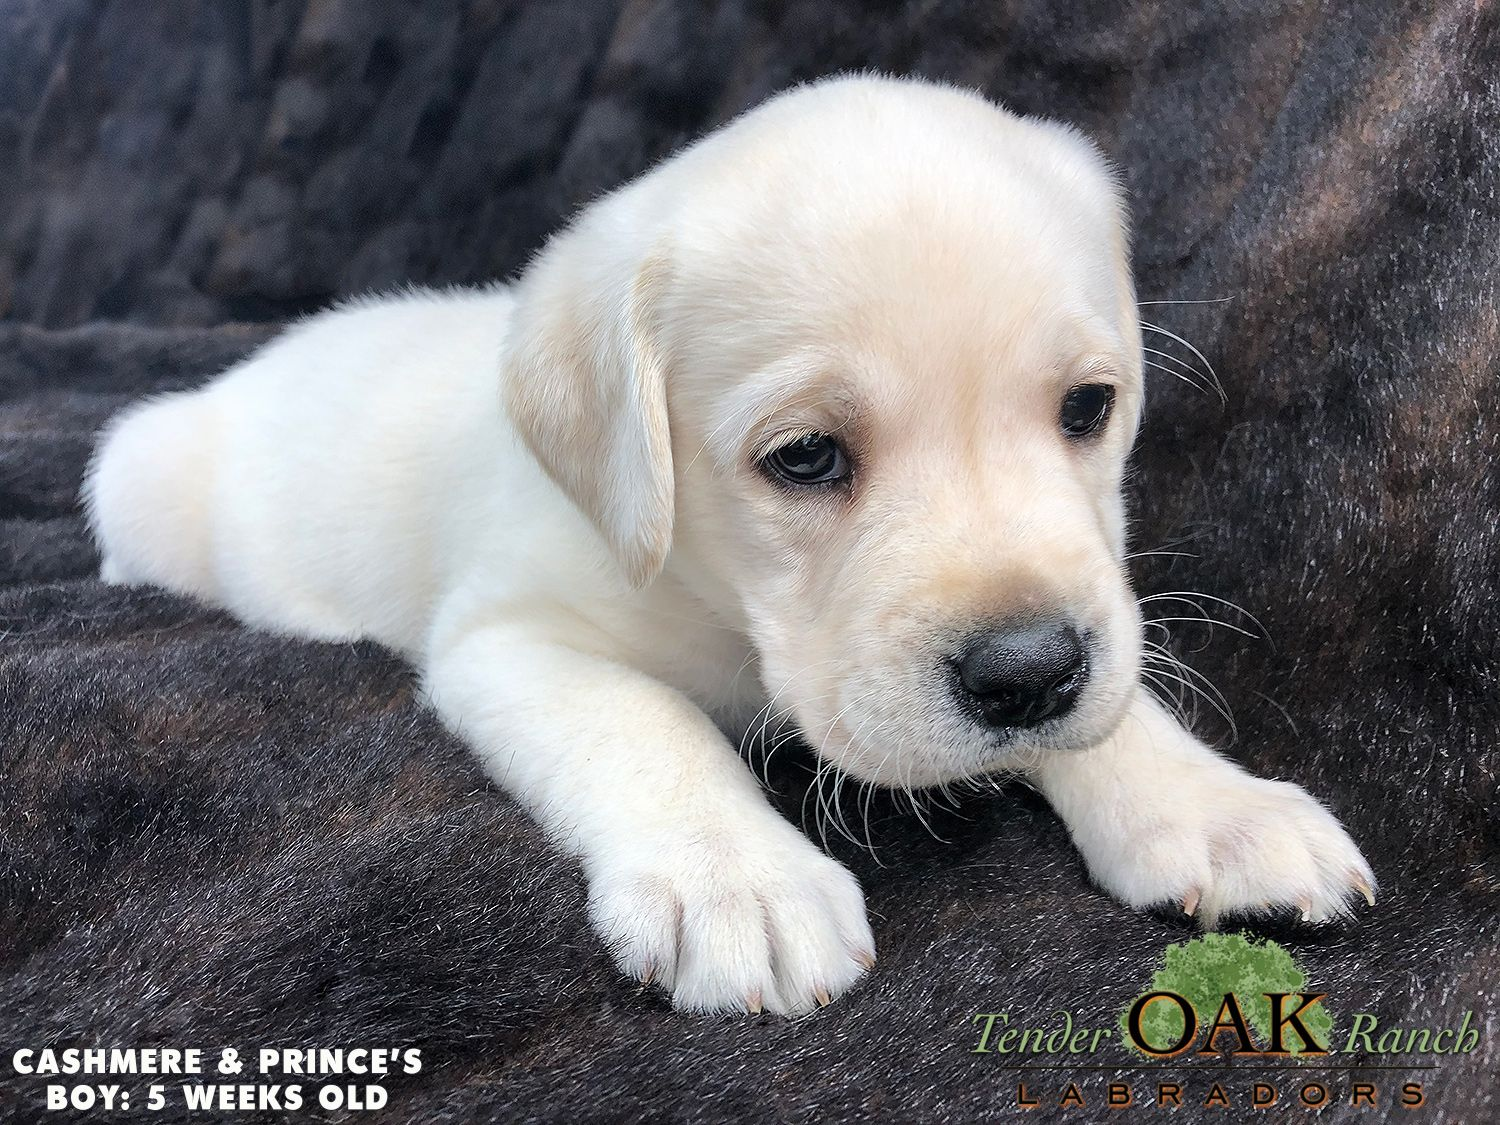 Labrador Puppies For Sale In San Diego Labrador Puppies For Sale Labrador Puppy Lab Puppies